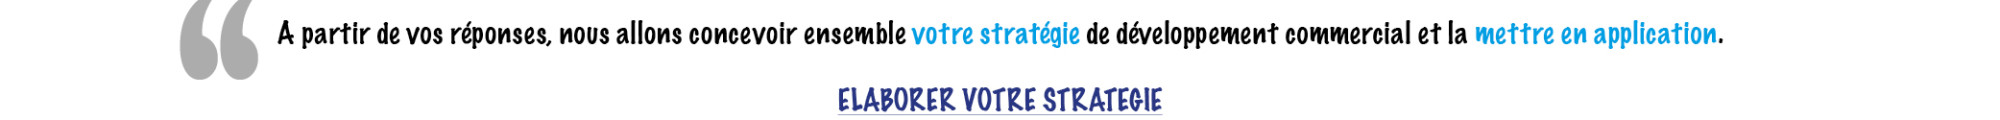 http://christophehulin.com/wp-content/uploads/2015/11/CH-CONCEPTION-STRATEGIE_link-2000x120.jpg